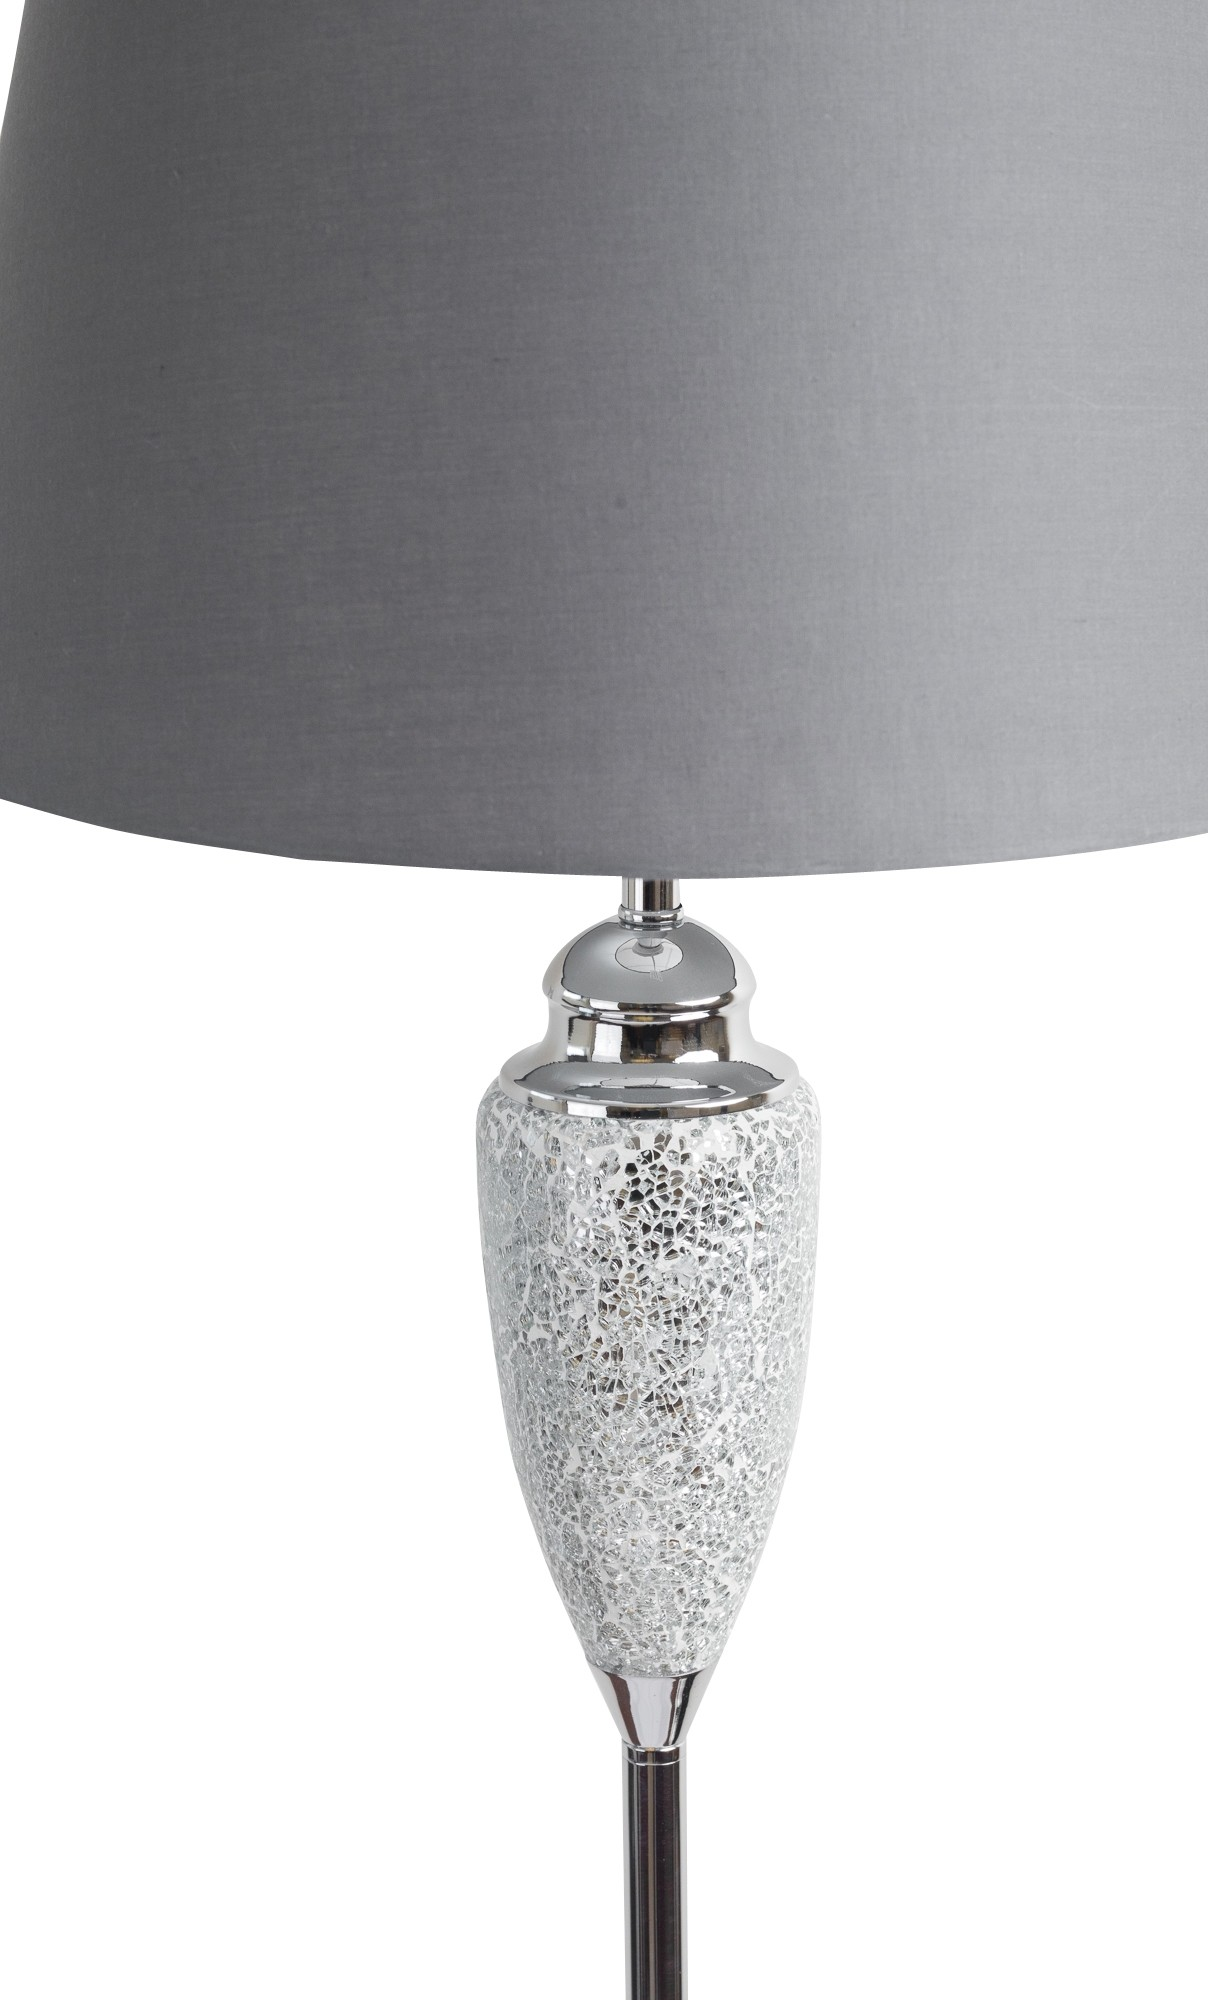 Glass Crackle Lamp Mirrored Crackle Glass Floor Lamp With Grey Shade